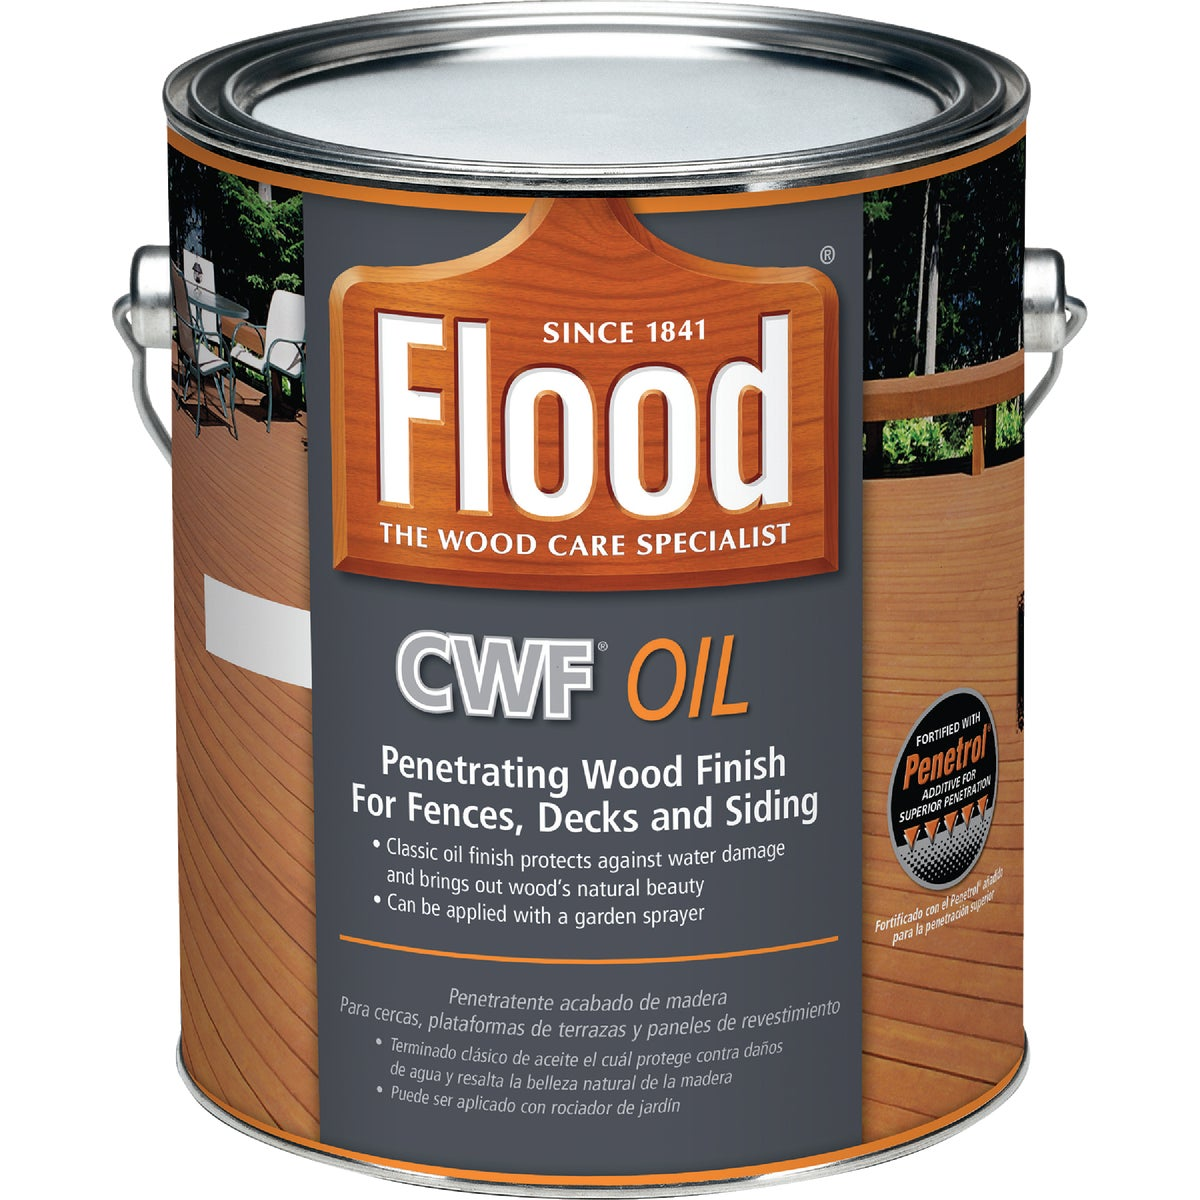 CWF CLEAR WOOD FINISH - FLD447 01 by Akzo Nobel Coatings